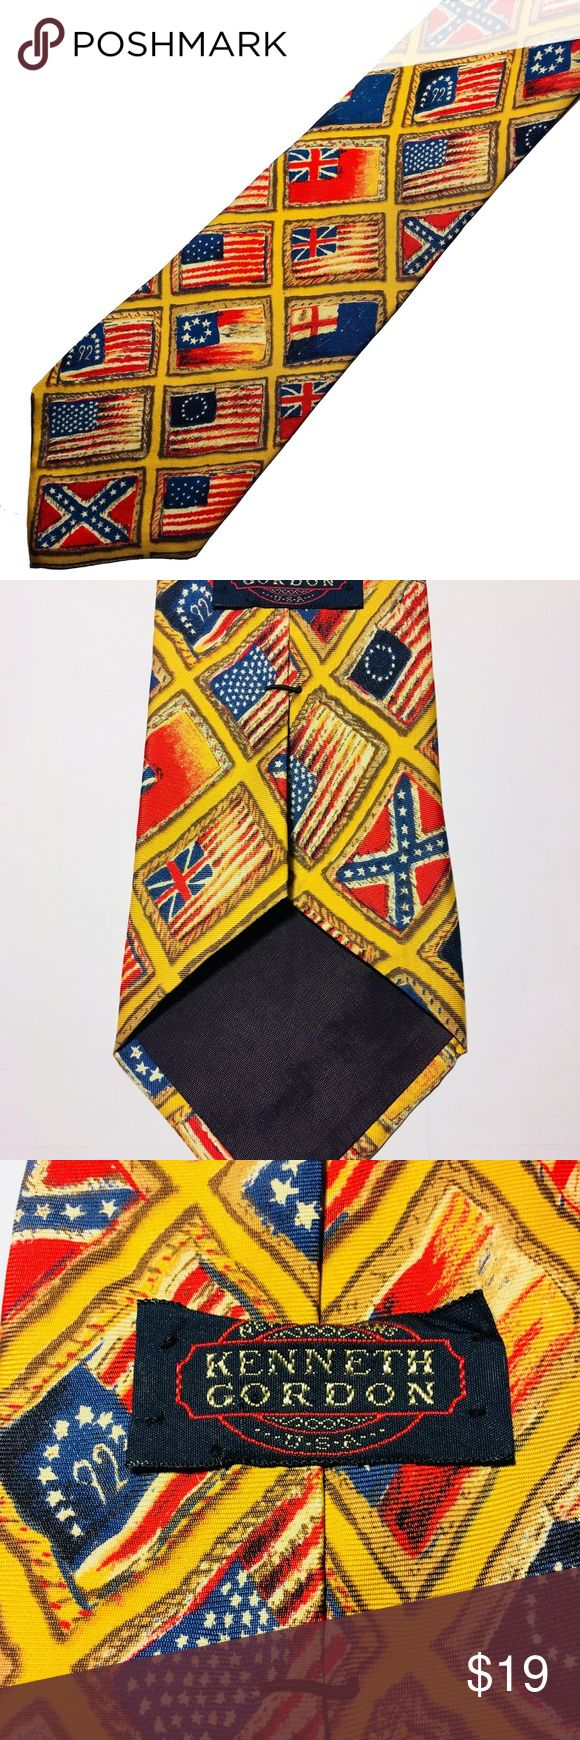 Kenneth Gordon Tie Confederate USA British Flags Unique Kenneth Gordon silk tie printed in Italy, made in USA. 58 inch length, 4 inch width. Features historical flags of the USA from long ago, the Confederate or rebel flag and variations of the British flag from the early 1800s. It does have a few thread runs that aren't really noticeable due to the bright colors but they are there about 6 inches up from the botton of the tie.  Makes a nice display piece if you're a history collector or tie…